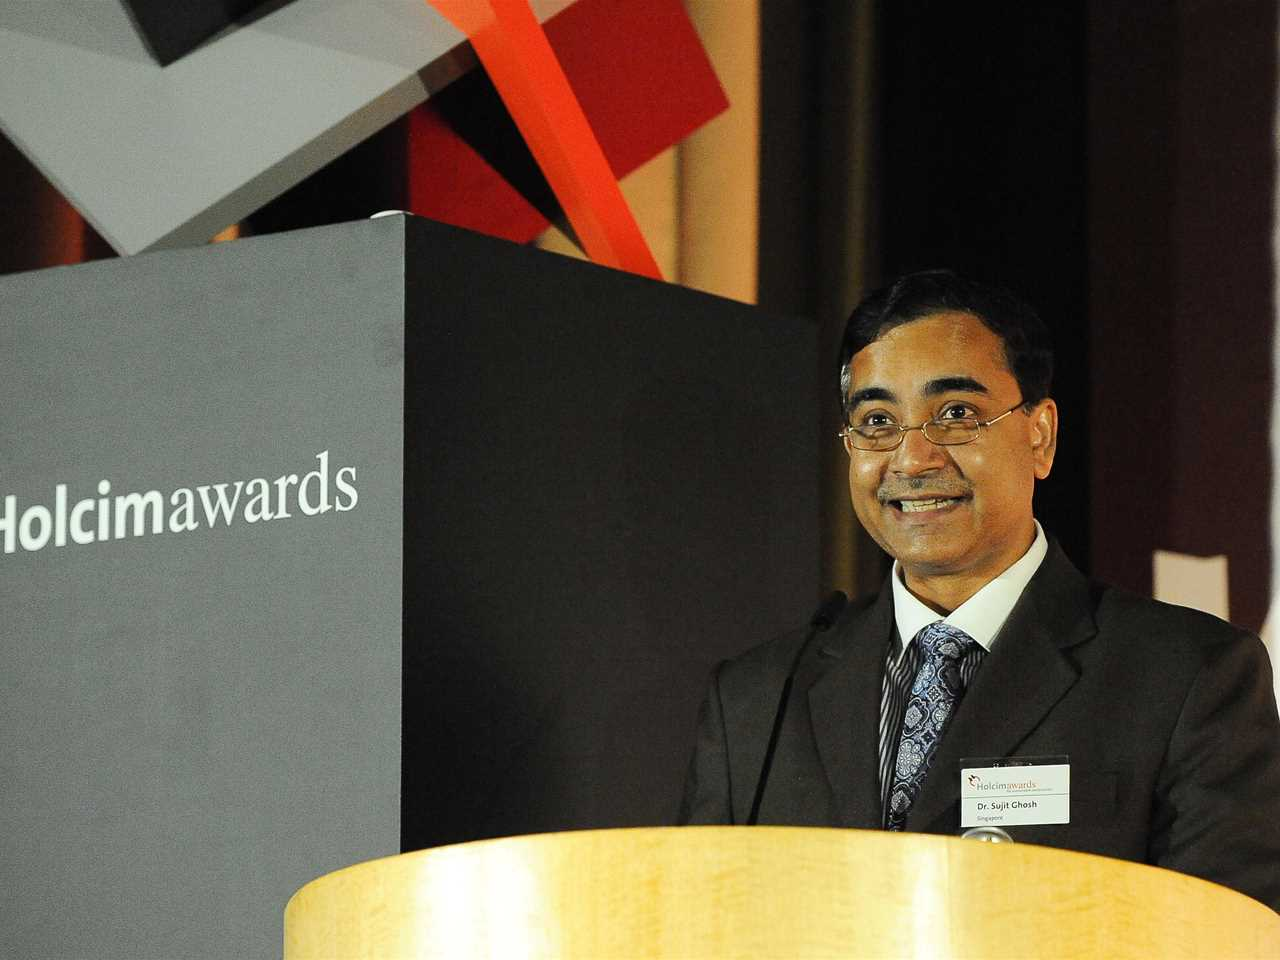 Sujit Ghosh, CEO of Holcim Singapore – farewell on behalf of host, Holcim Singapore, and the …